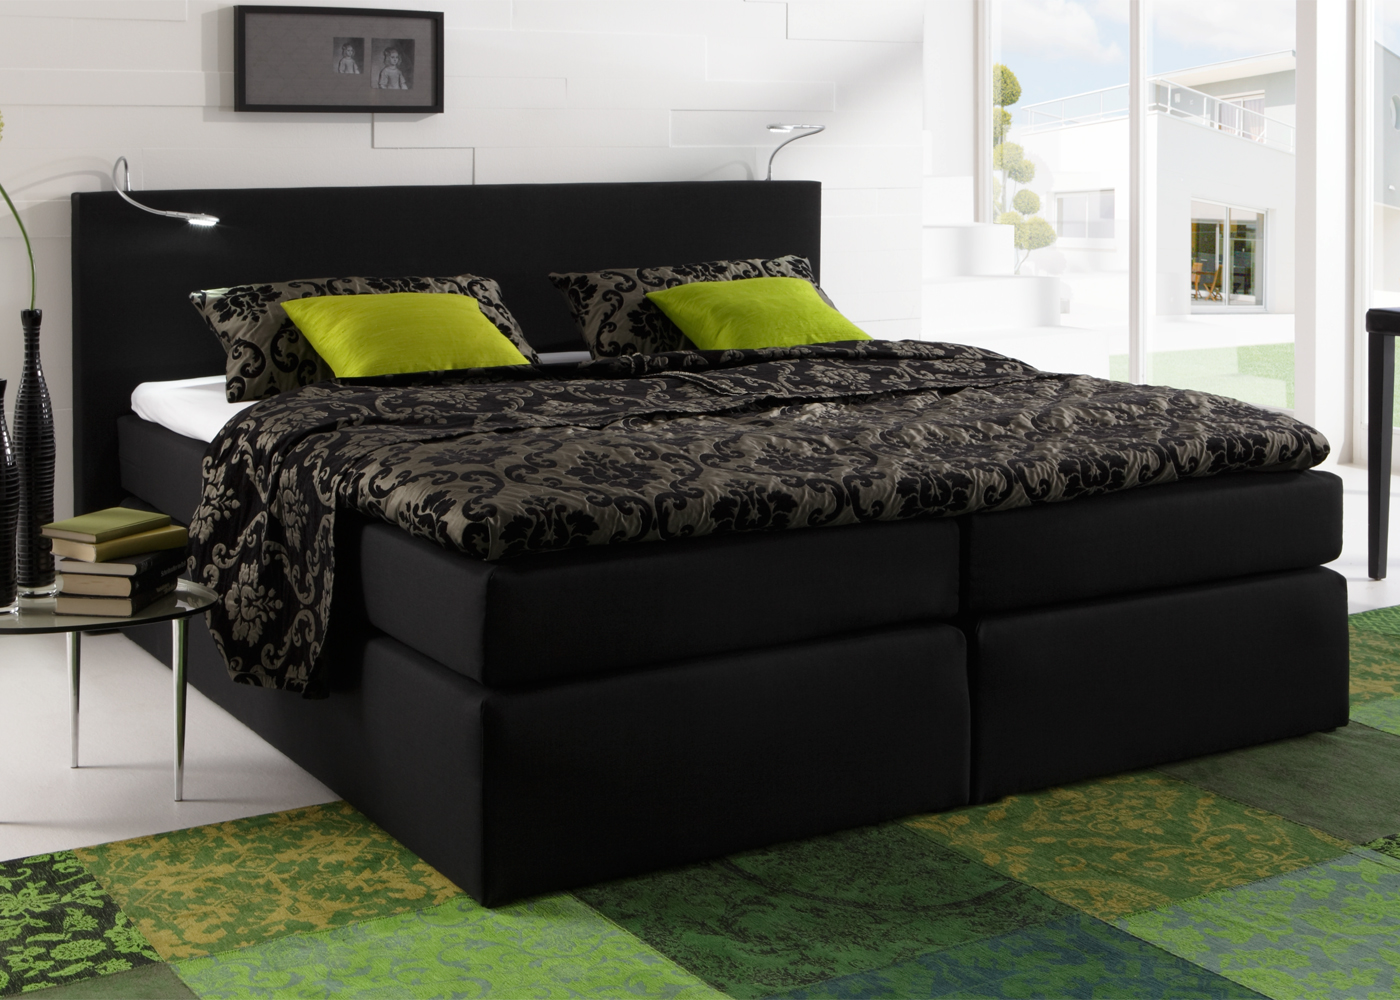 boxspringbett atlanta hotelbett doppelbett savanna federkern und topper ebay. Black Bedroom Furniture Sets. Home Design Ideas